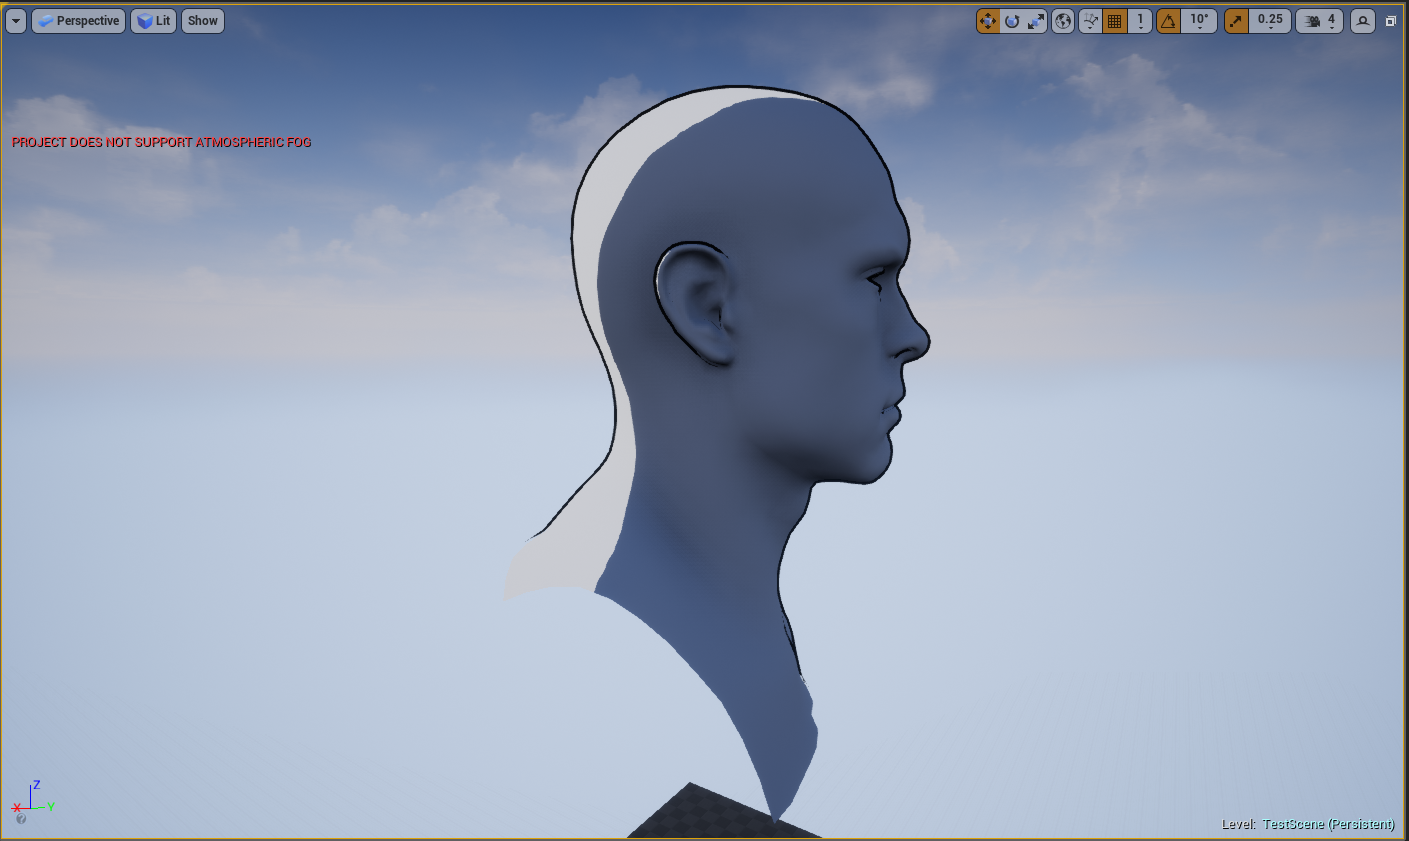 Unreal Engine 4 Rendering Part 6: Adding a new Shading Model